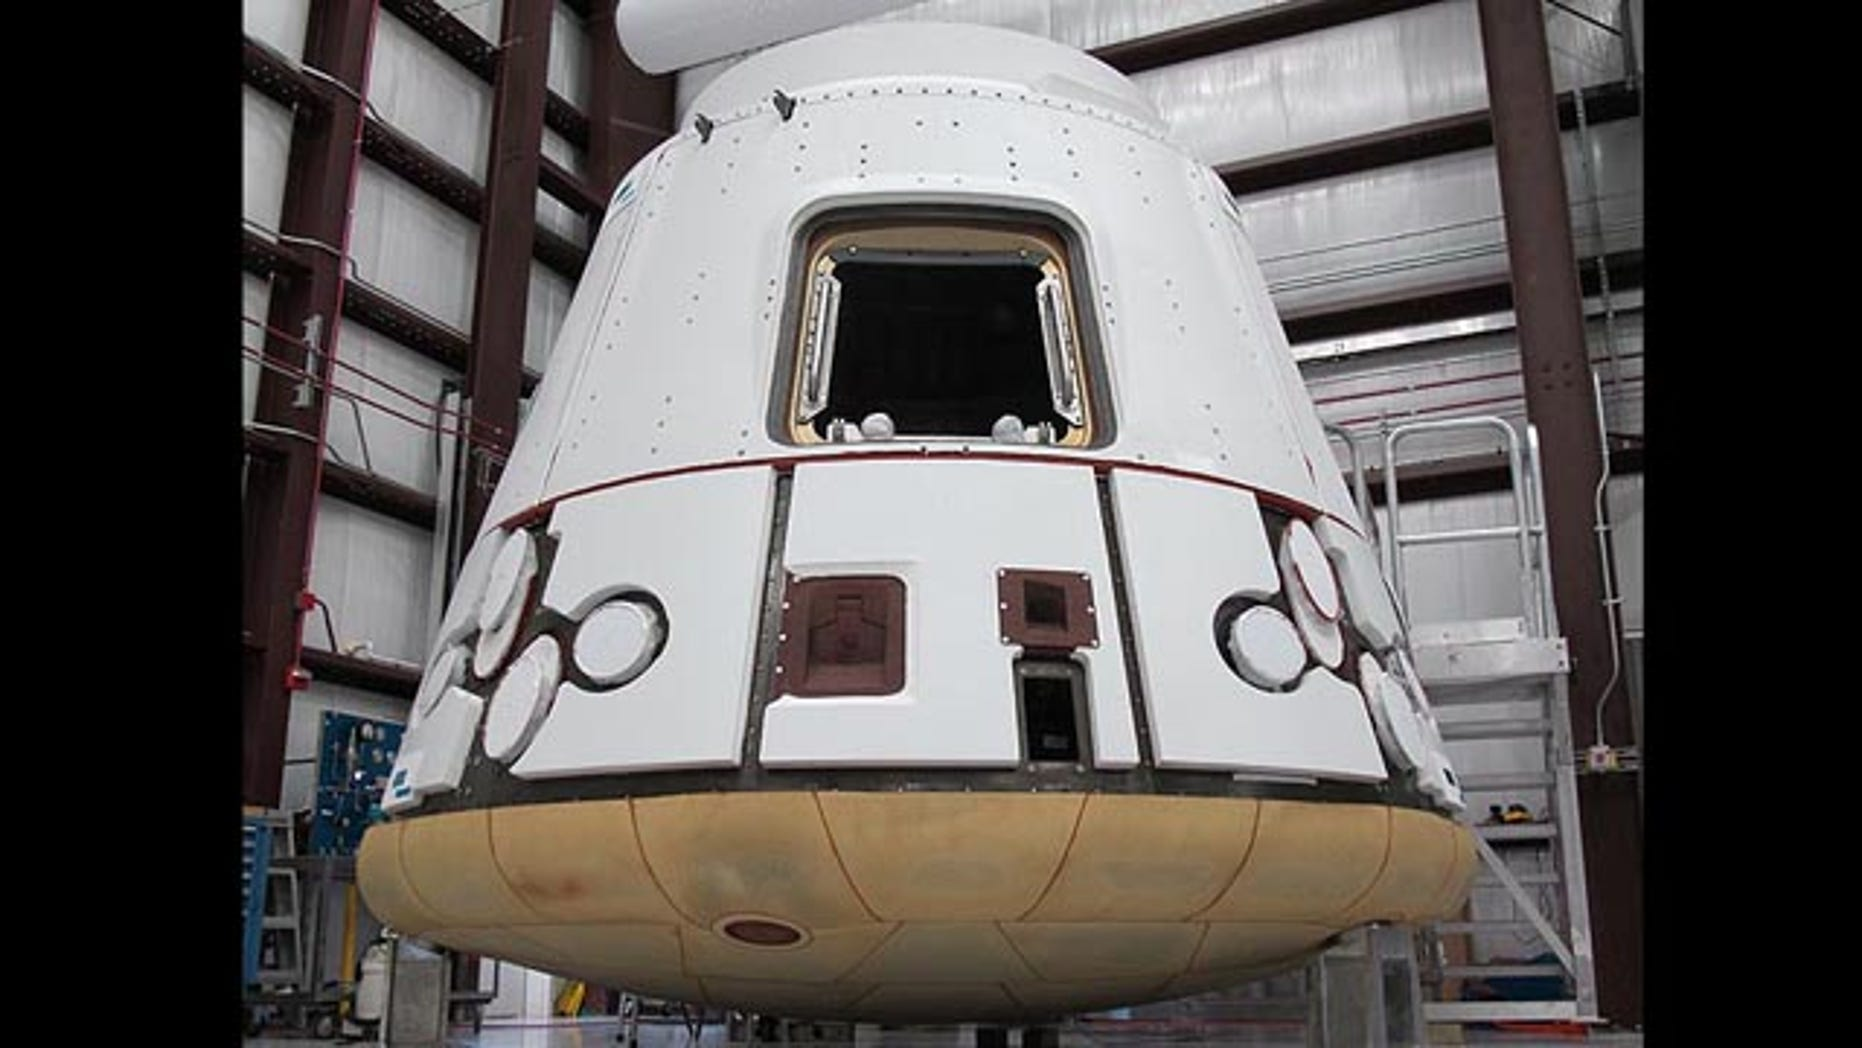 In the SpaceX hangar at Cape Canaveral, the Dragon spacecraft prepares for integration with the Falcon 9 launch vehicle. Visible at the base of the spacecraft is Dragon�s heat shield, made of PICA-X, the SpaceX manufactured variation on NASA�s Phenolic Impregnated Carbon Ablator (PICA) heat shield material. Dragon will reenter the Earth�s atmosphere at around 7 kilometers per second (15,660 miles per hour), heating the exterior up to 1850 degrees Celsius. However, just a few inches of the PICA-X material will keep the interior of the spacecraft at a comfortable temperature.